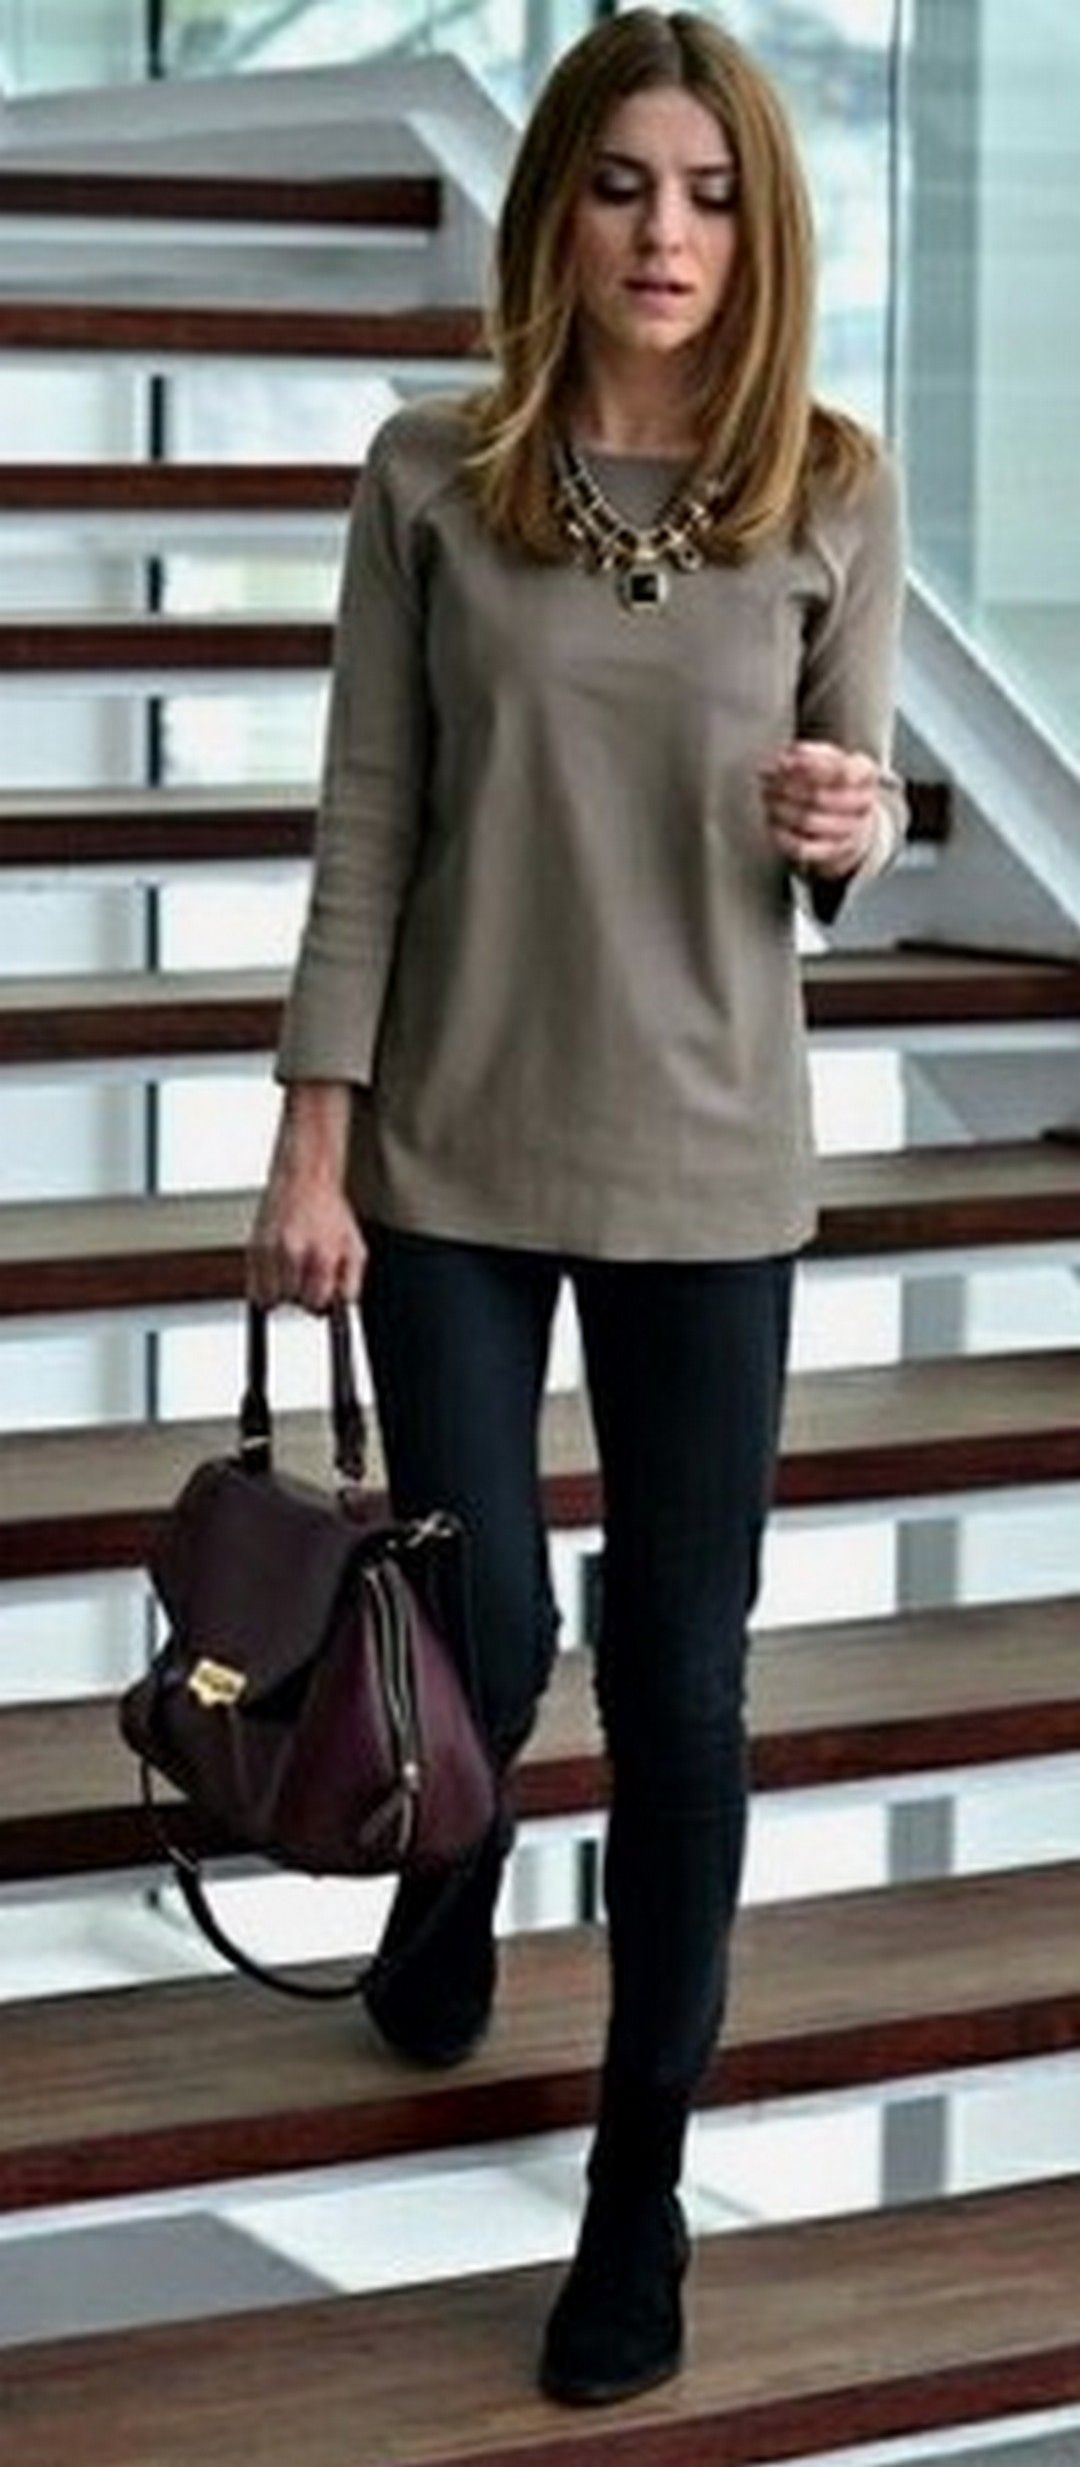 581fbb80ad 60+ Simple and Perfect Interview Outfit Ideas